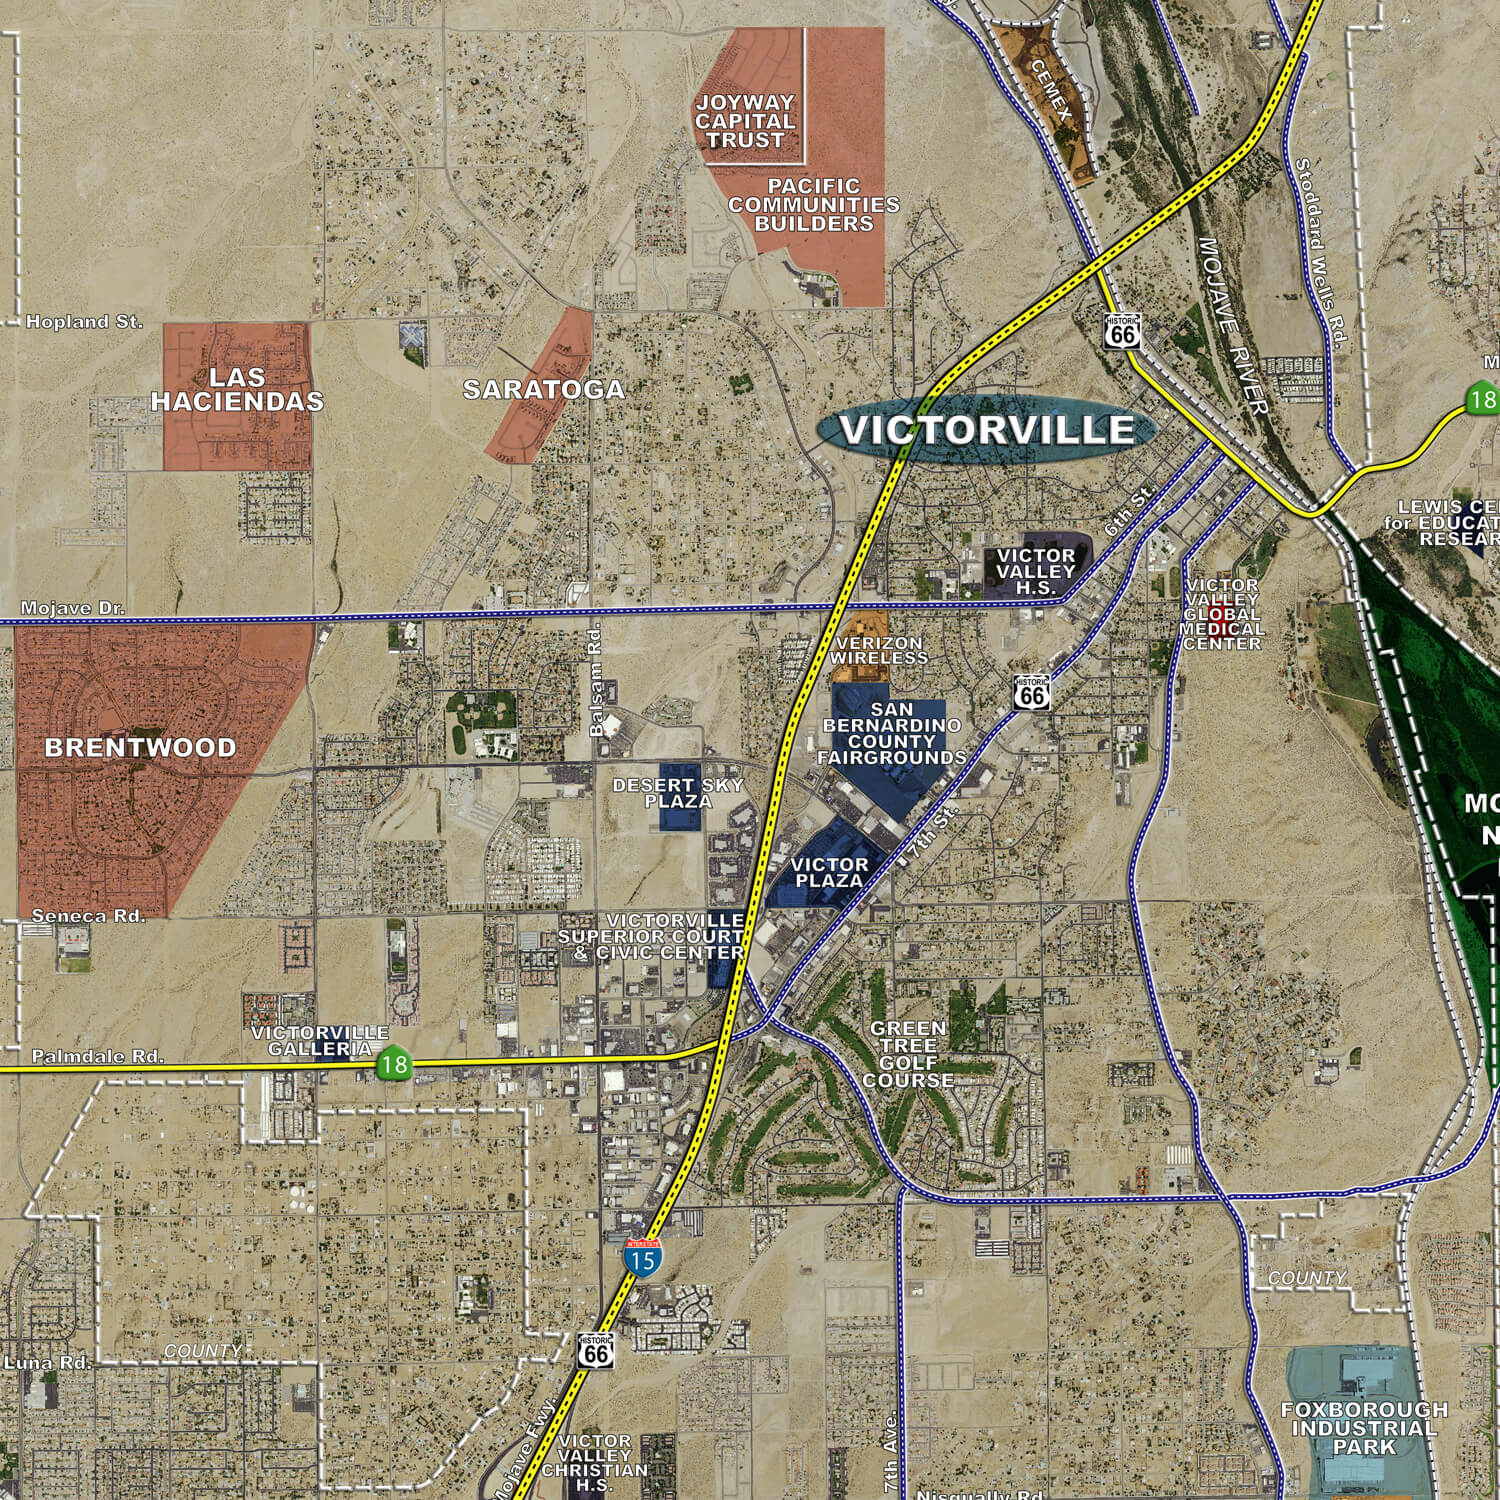 victor valley aerial wall mural landiscor real estate mapping 2015 victor valley wall map mural standard print scale 96 x90